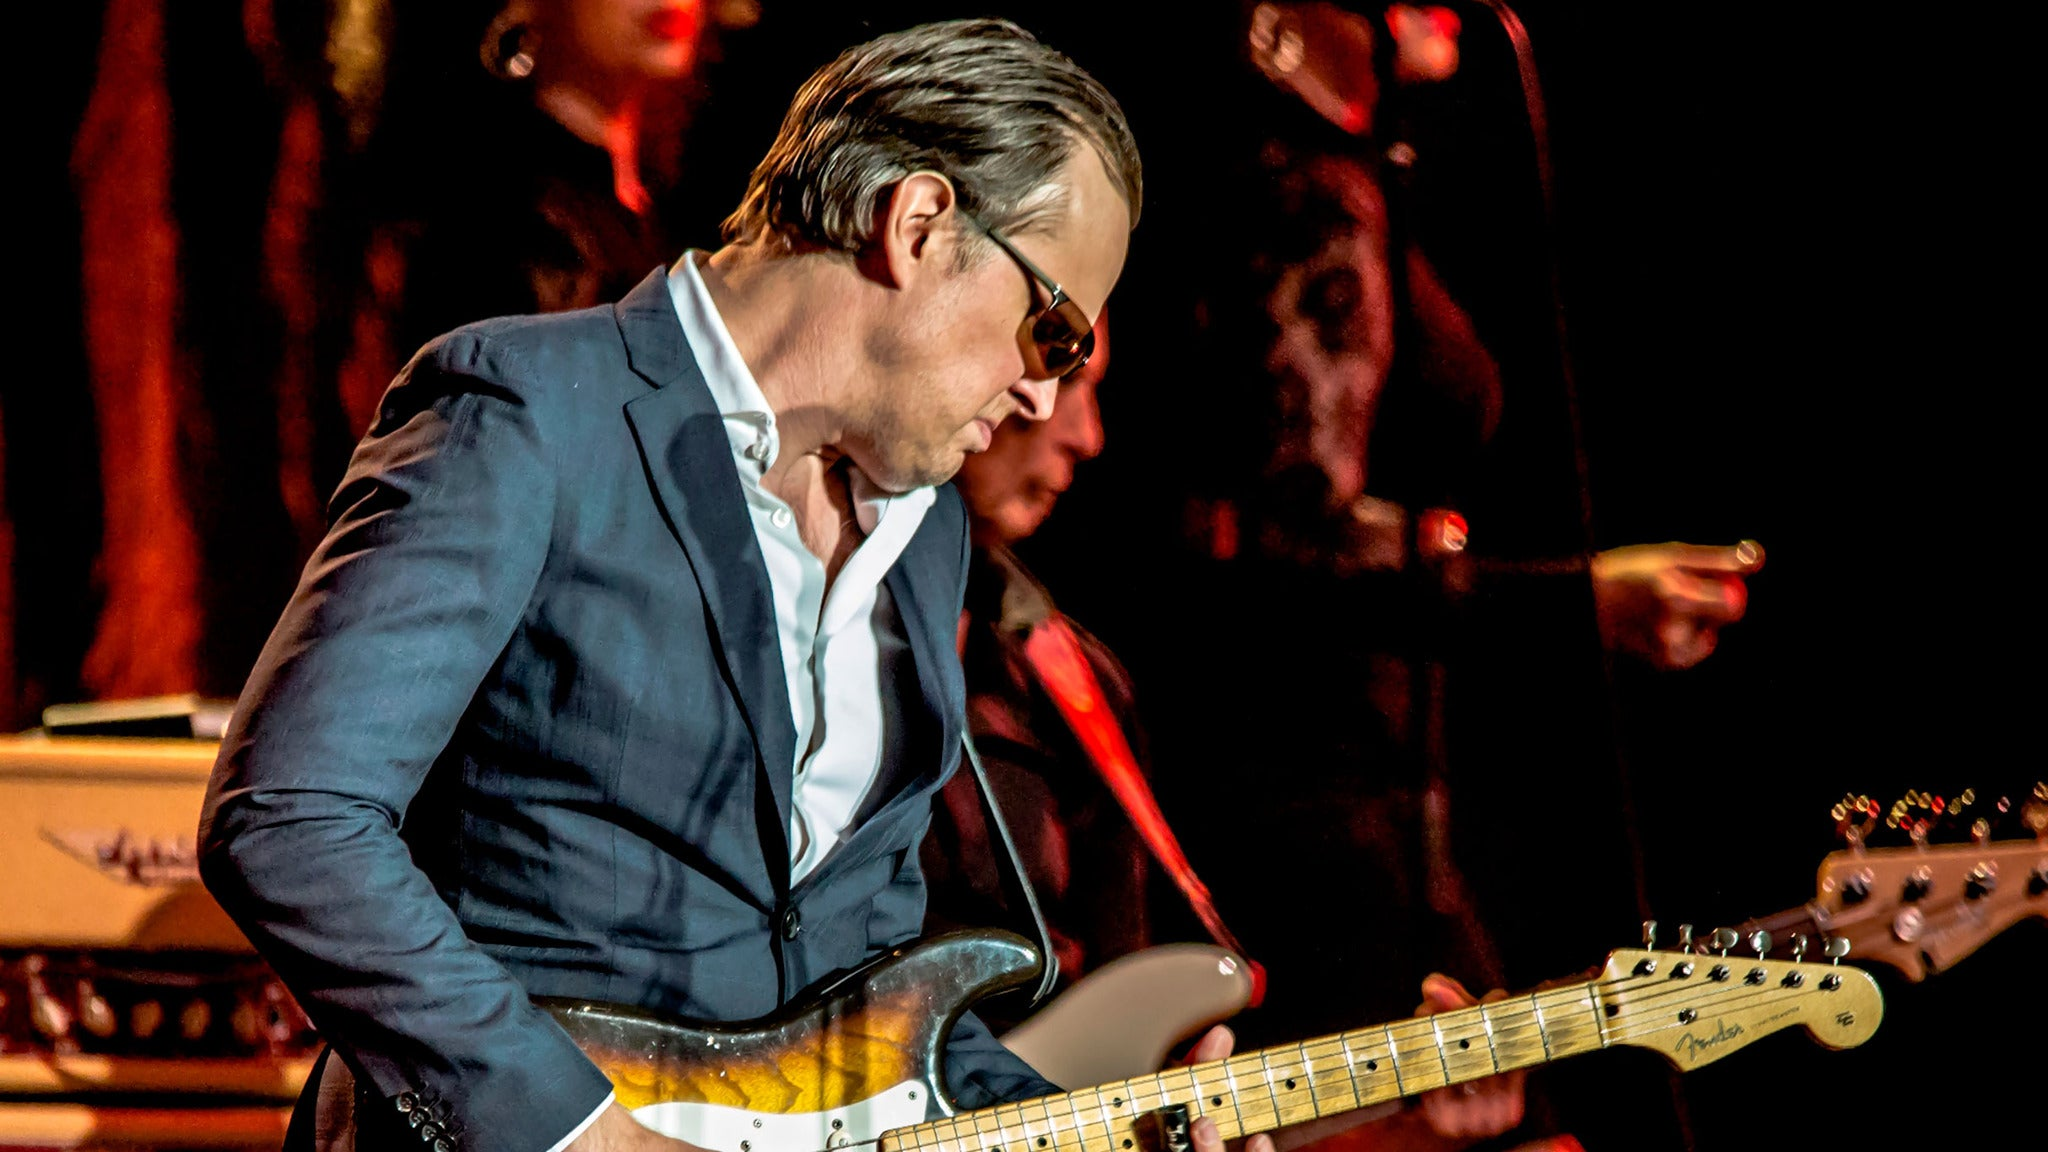 Joe Bonamassa at Hertz Arena (formerly Germain Arena)